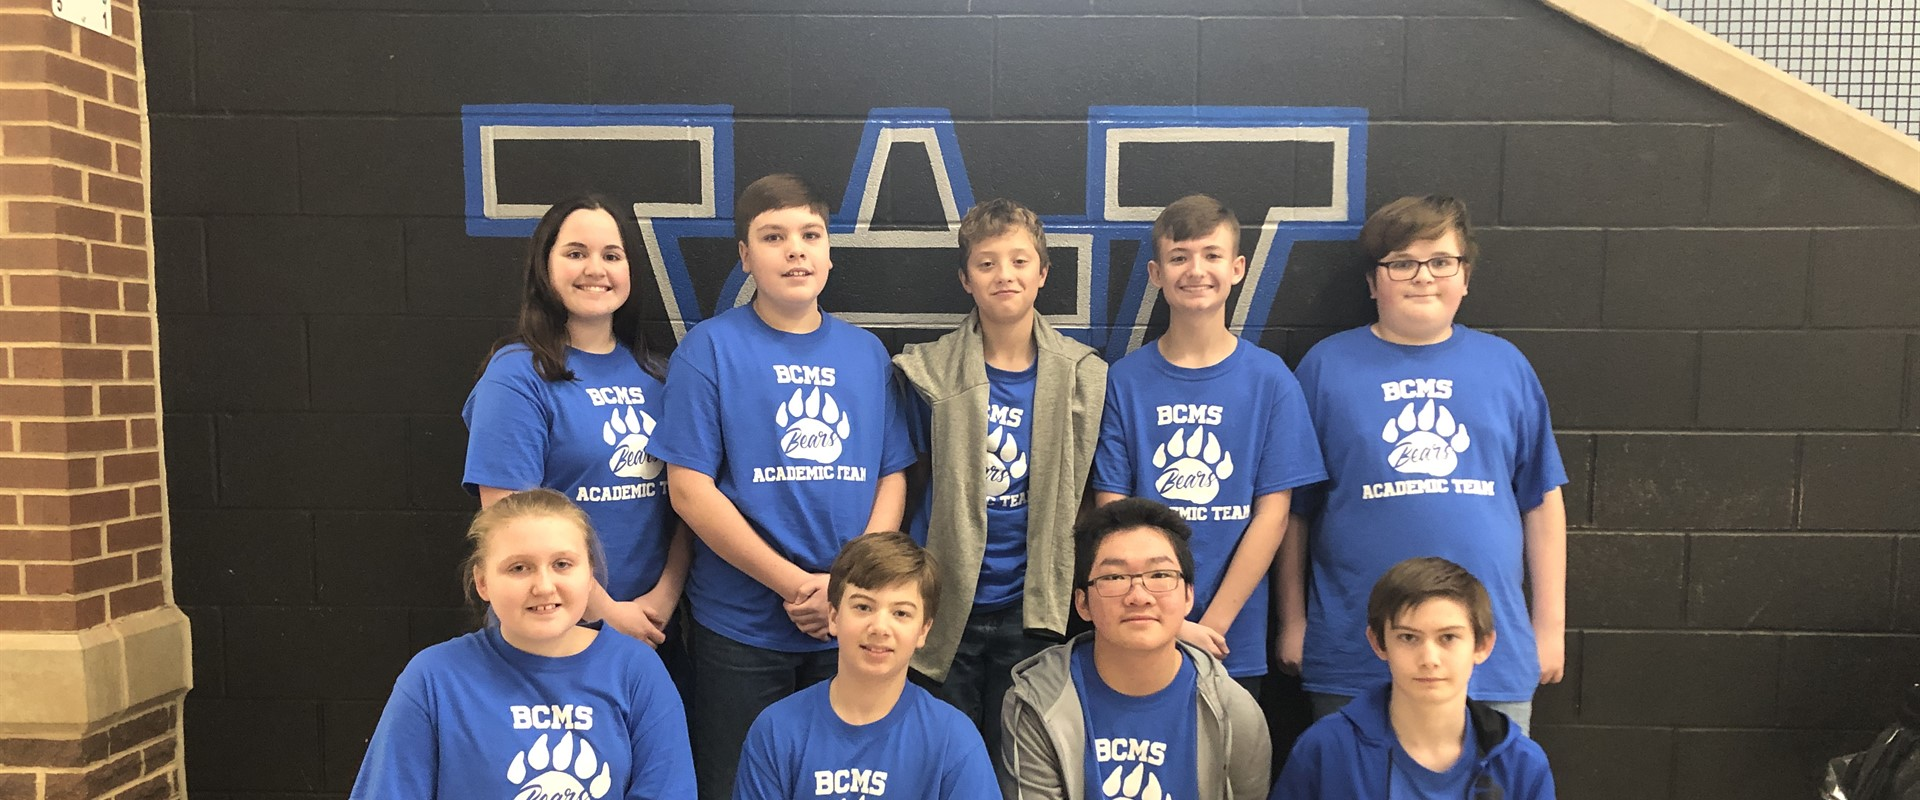 Regional Governor's Cup Academic Team Competitors